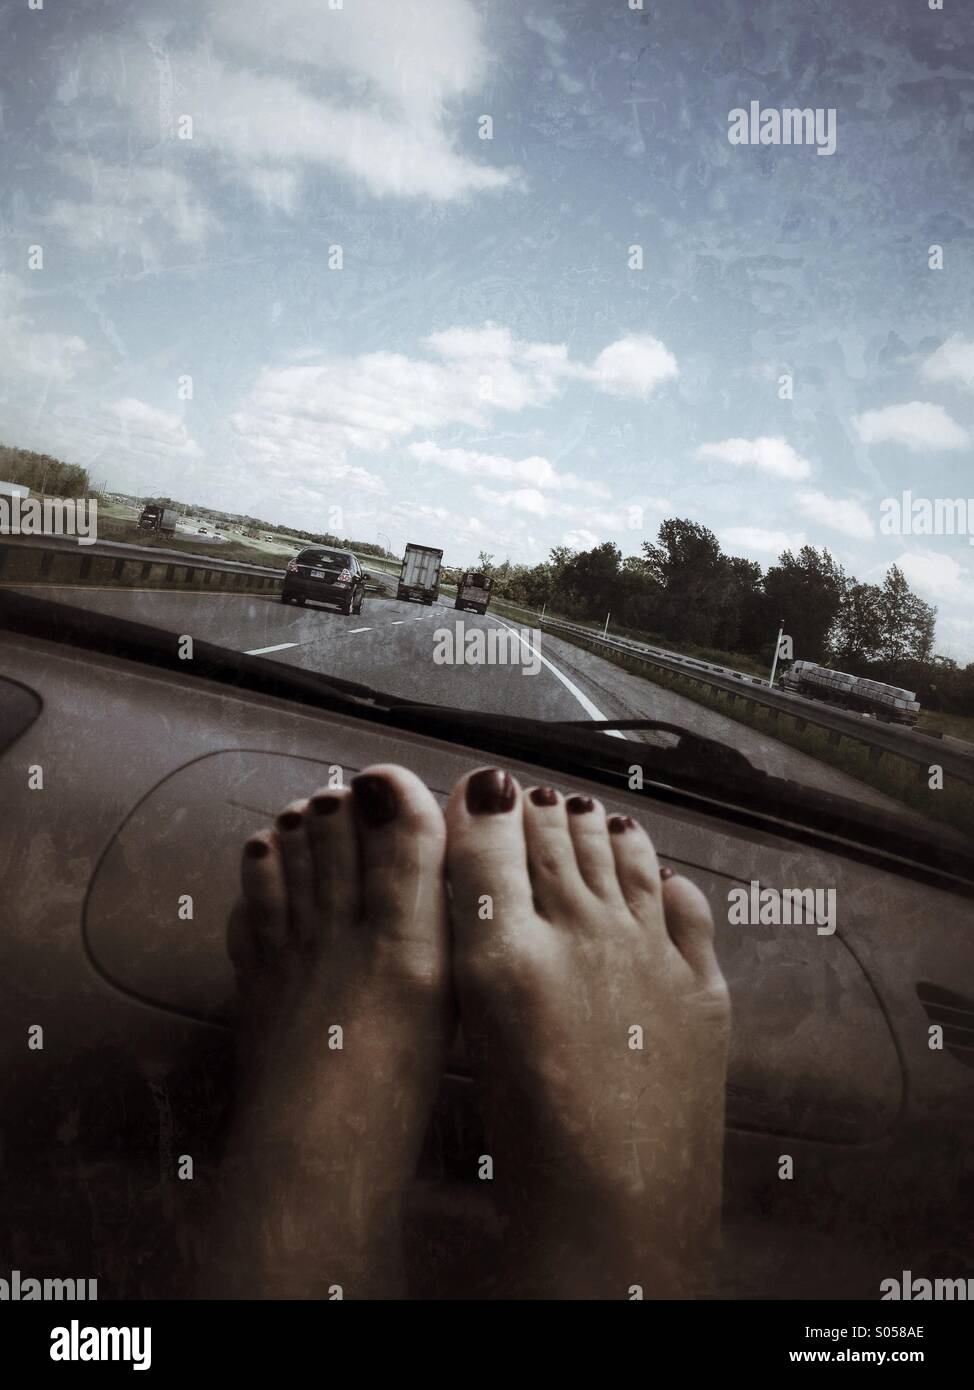 On the road - Stock Image